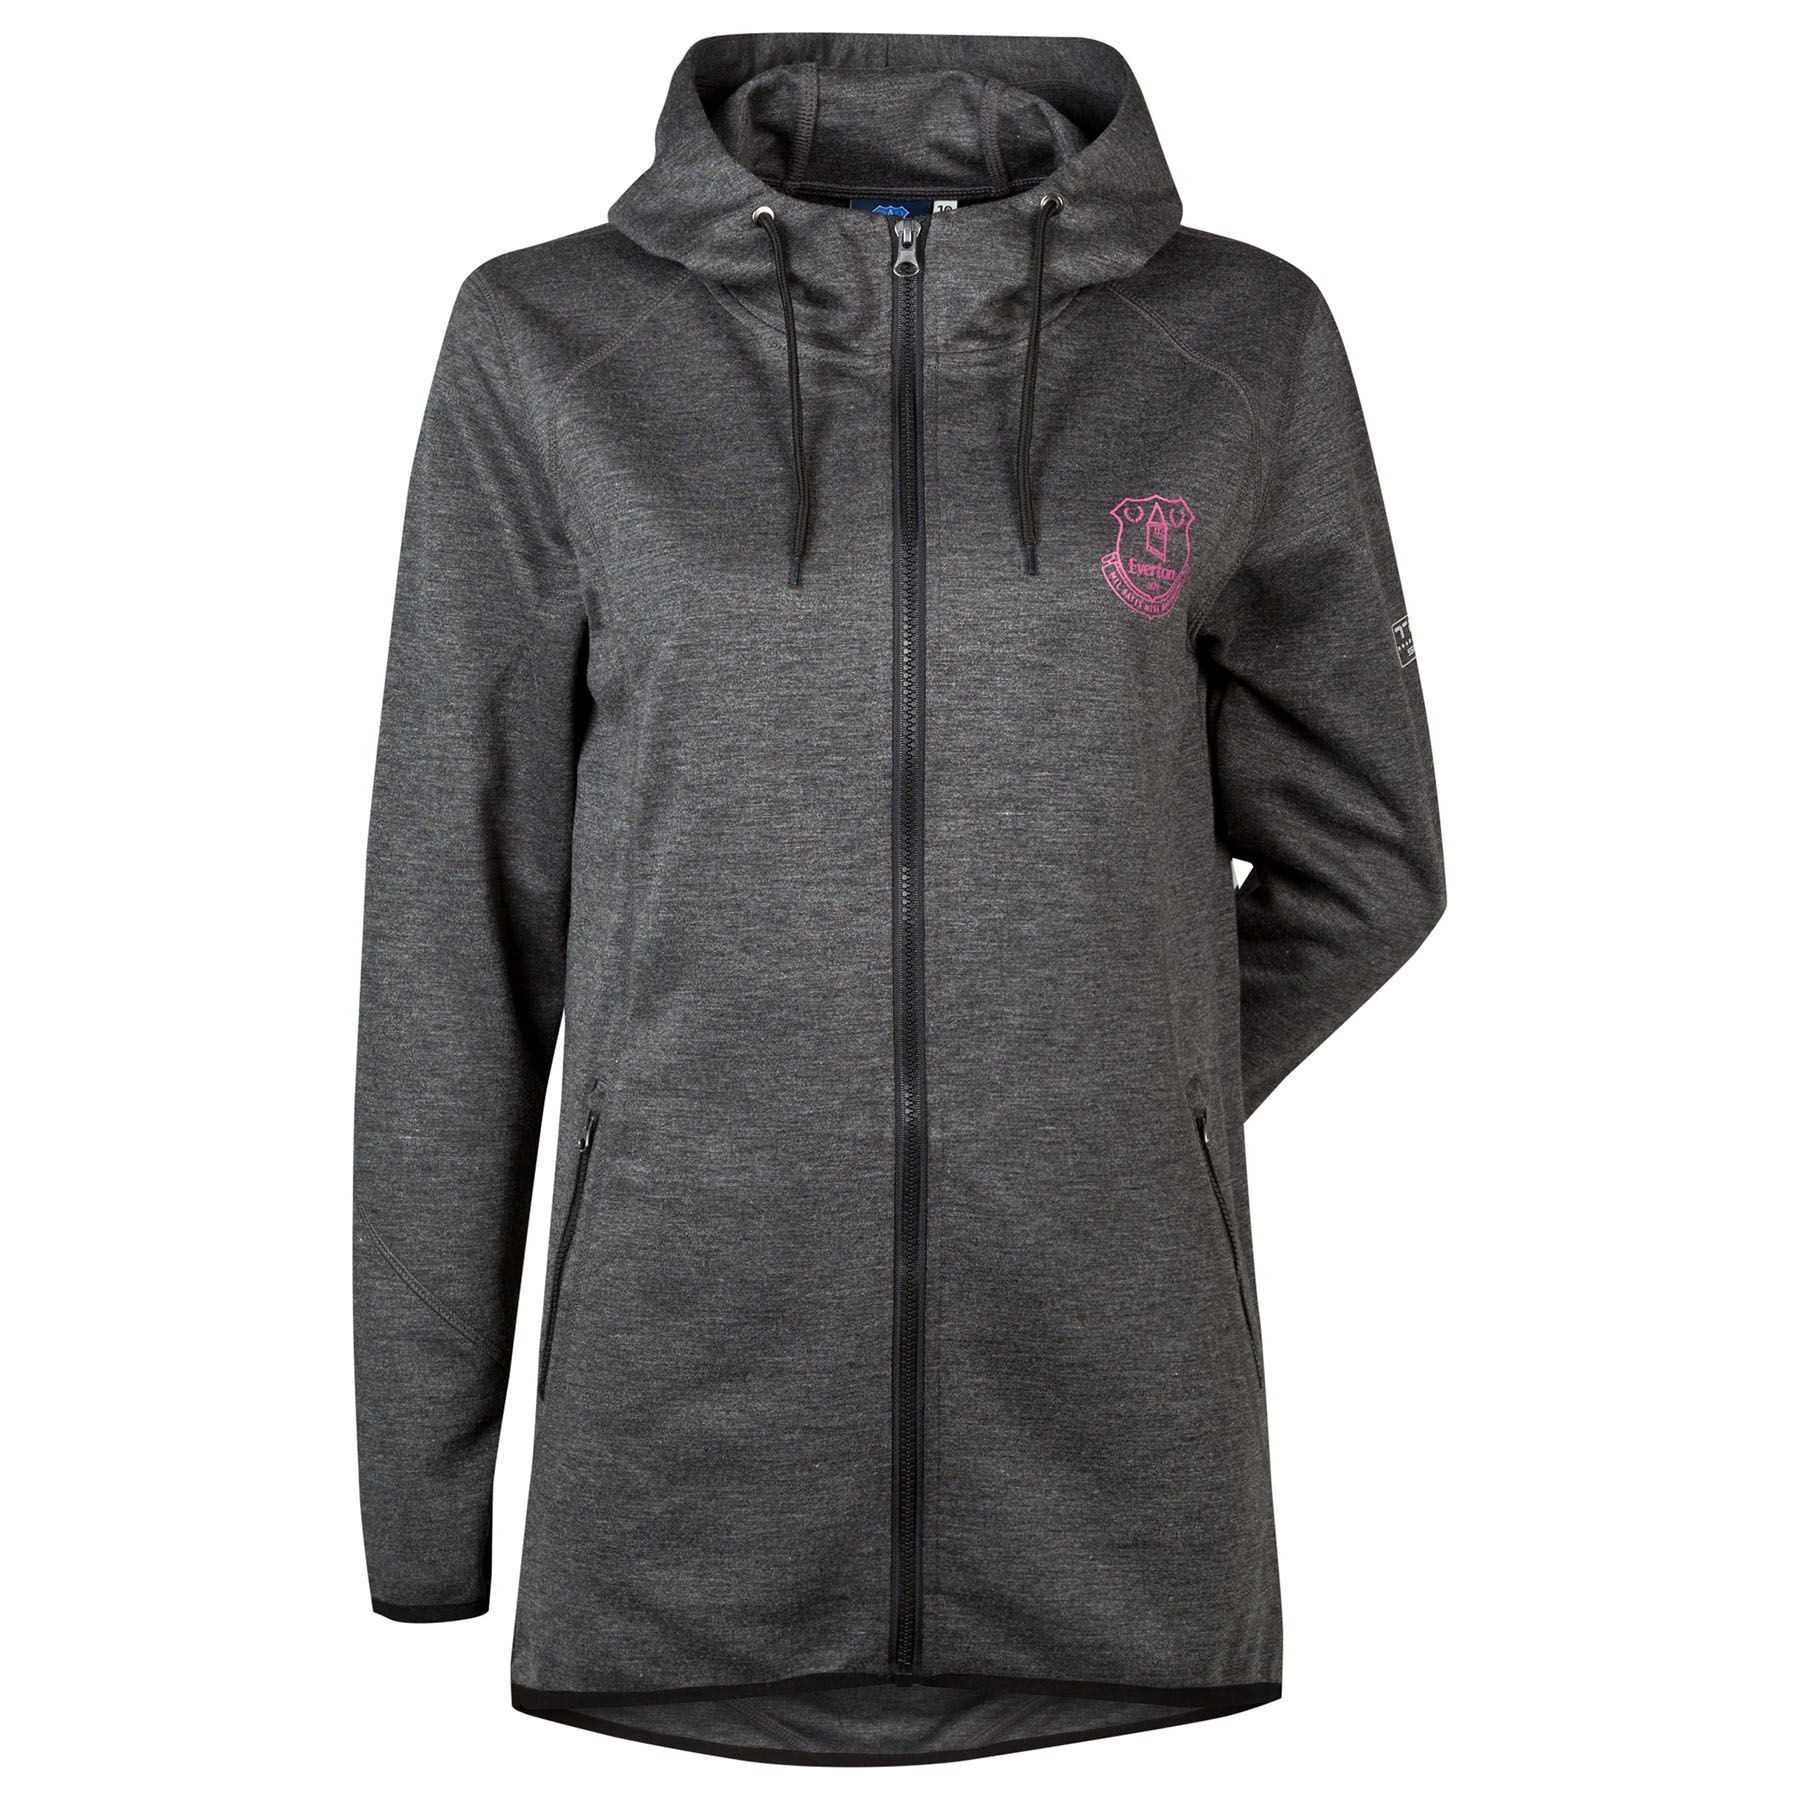 Everton Performance Tech hoodie - Charcoal Marl - Womens